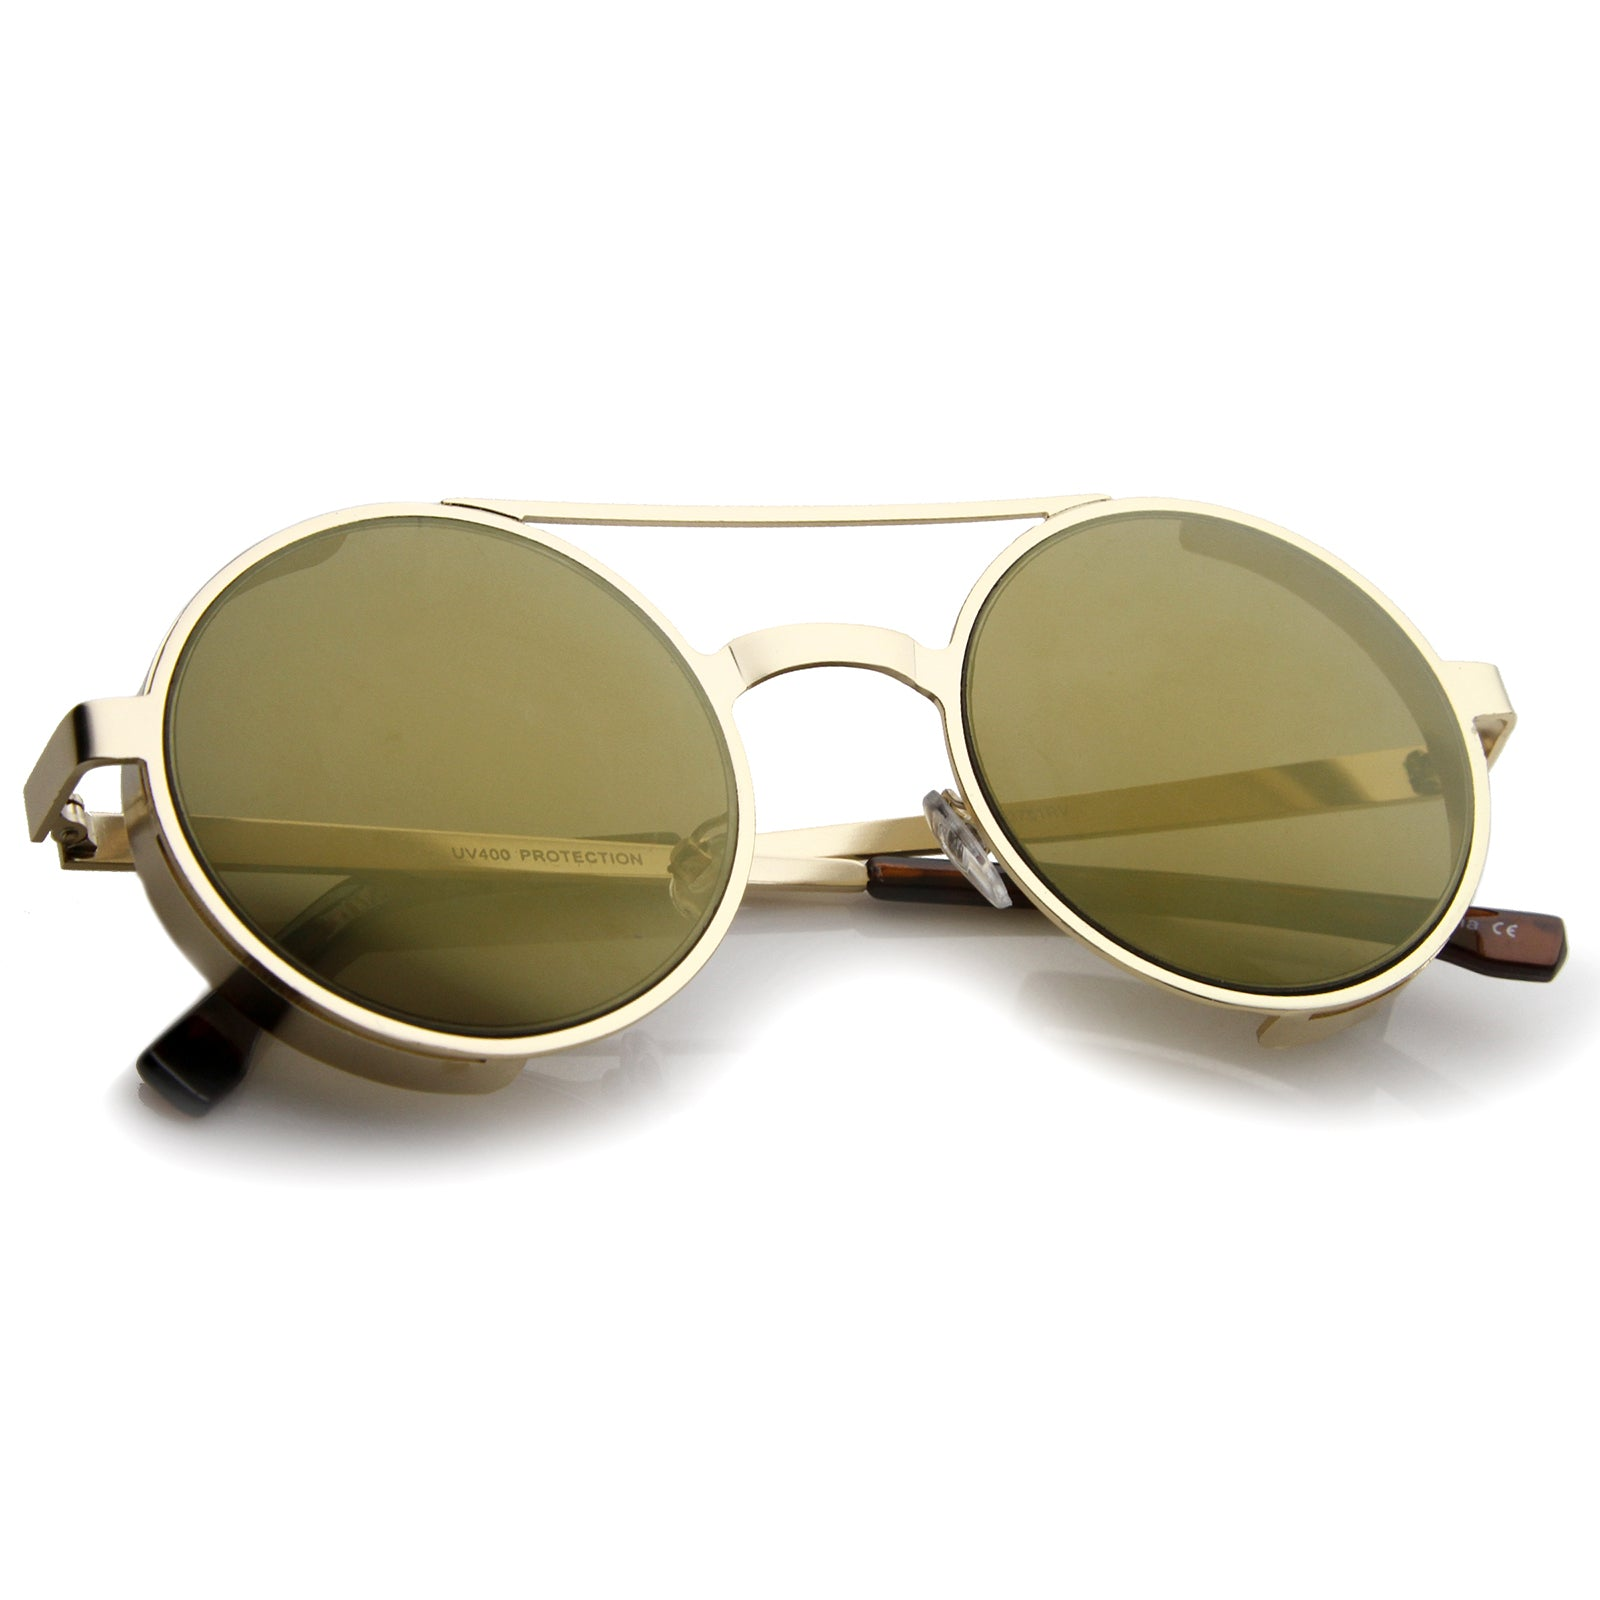 Retro Steampunk Side Cover Crossbar Metal Frame Round Sunglasses 49mm - sunglass.la - 4